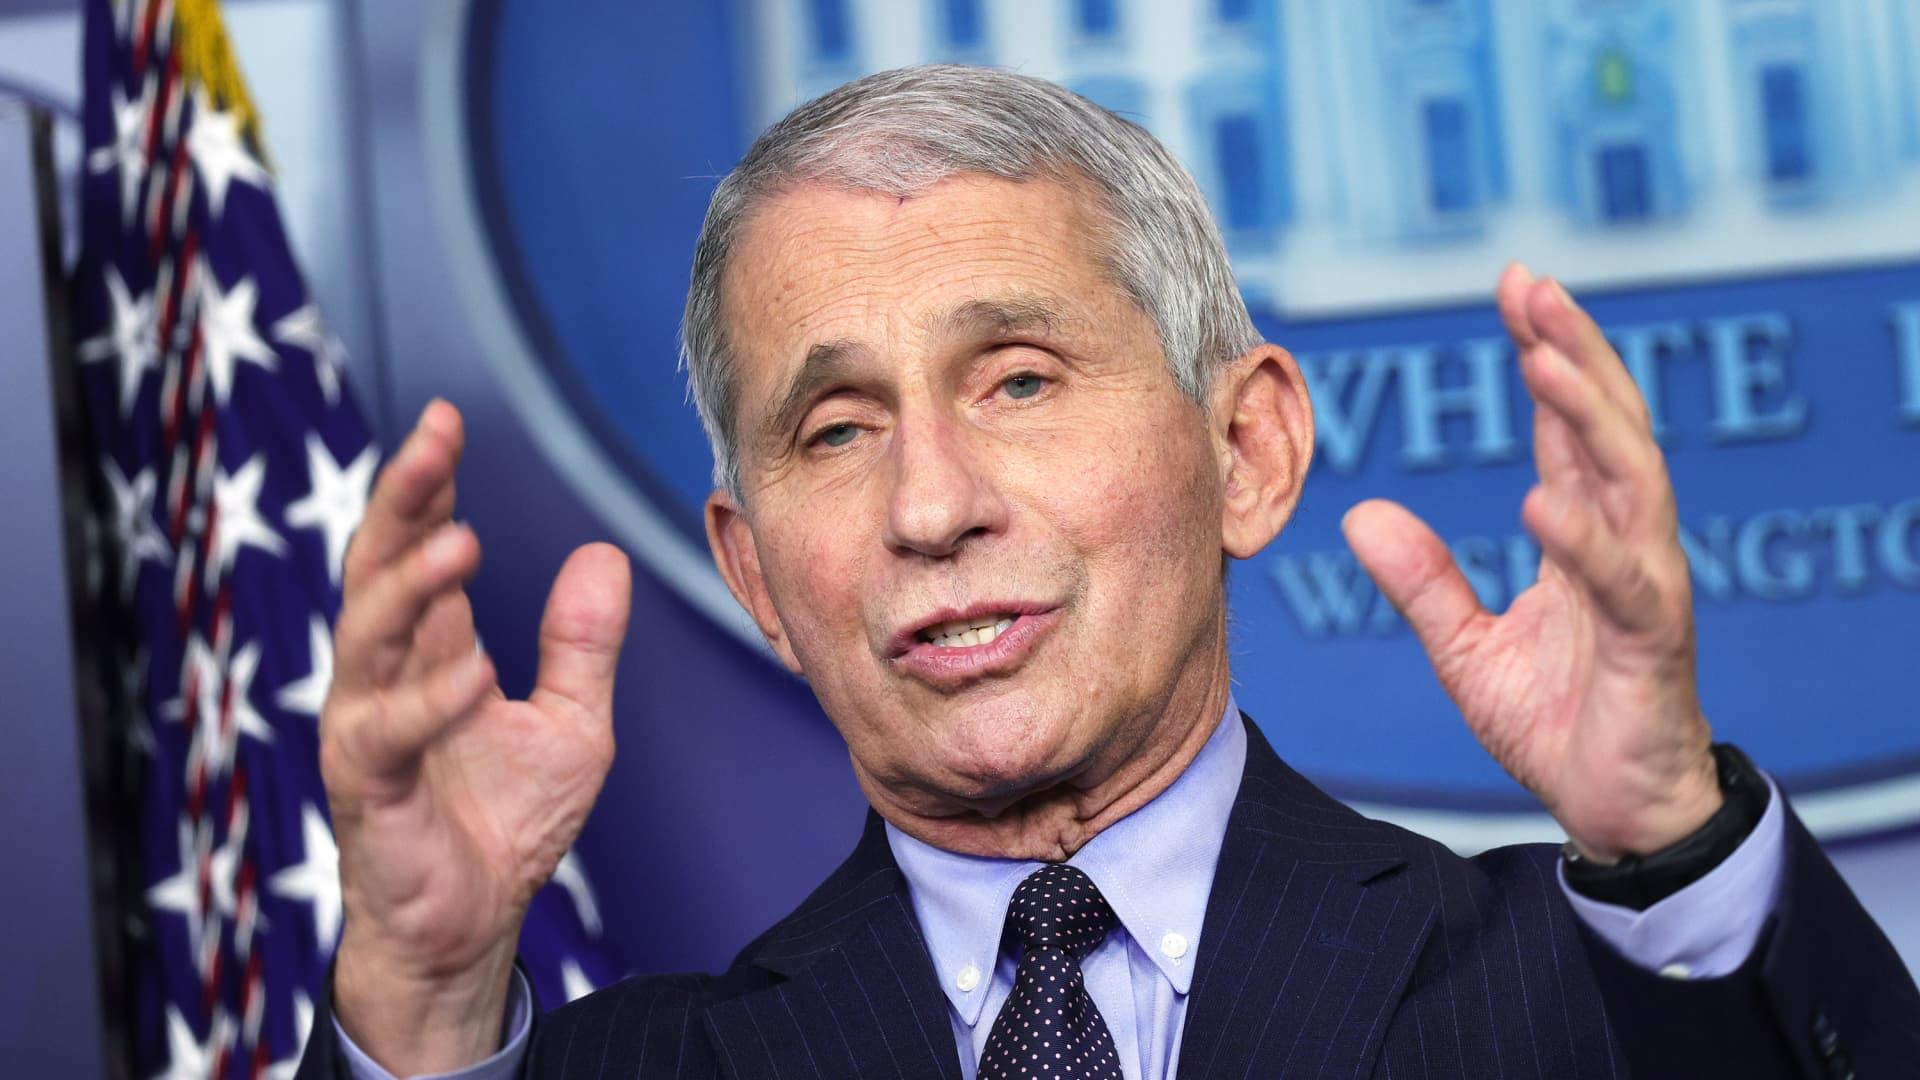 Dr Anthony Fauci, Director of the National Institute of Allergy and Infectious Diseases, speaks during a White House press briefing, conducted by White House Press Secretary Jen Psaki, at the James Brady Press Briefing Room of the White House January 21, 2021 in Washington, DC.